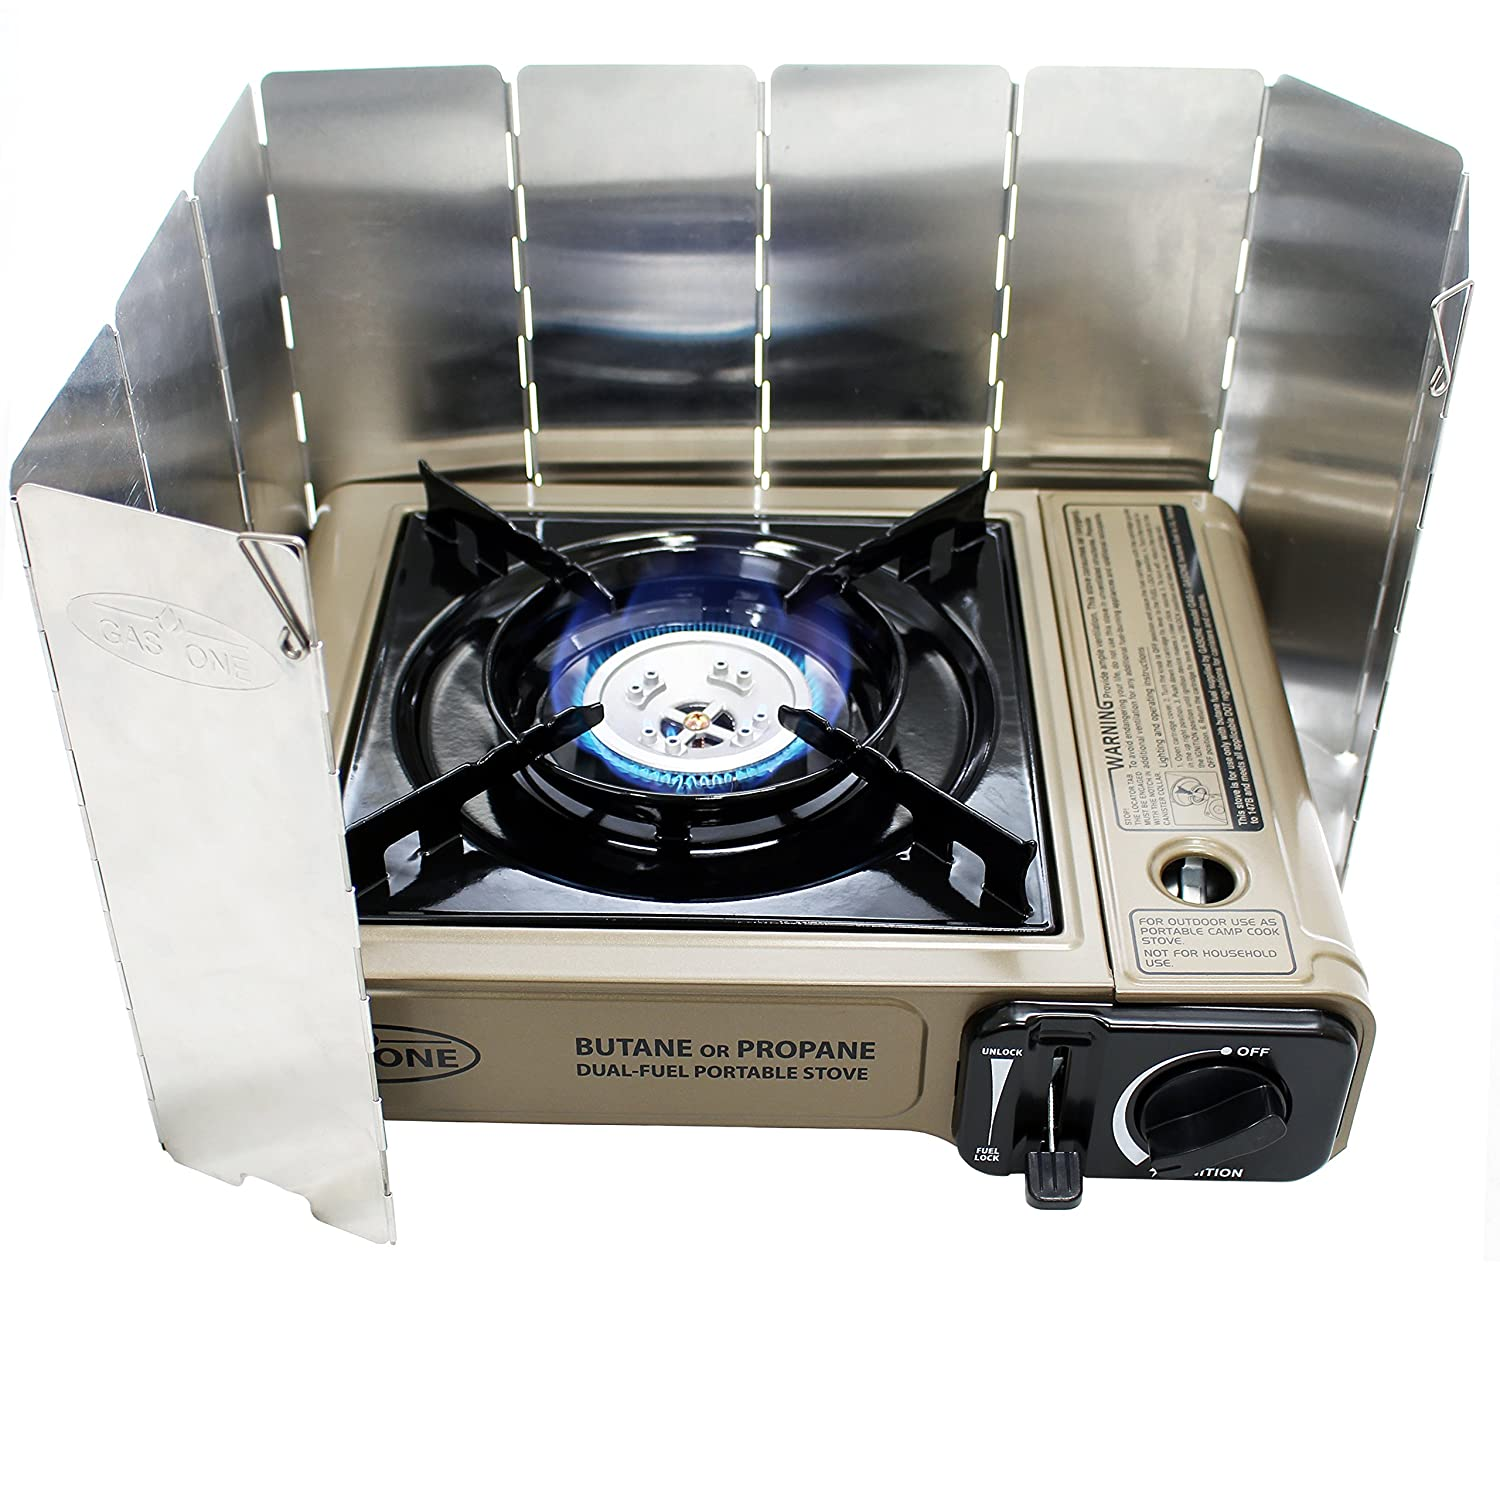 Gas ONE New GS-3400P with 10 Plate WindScreen , Dual Fuel Portable Propane Butane Camping and Backpacking Gas Stove Burner with Carrying Case